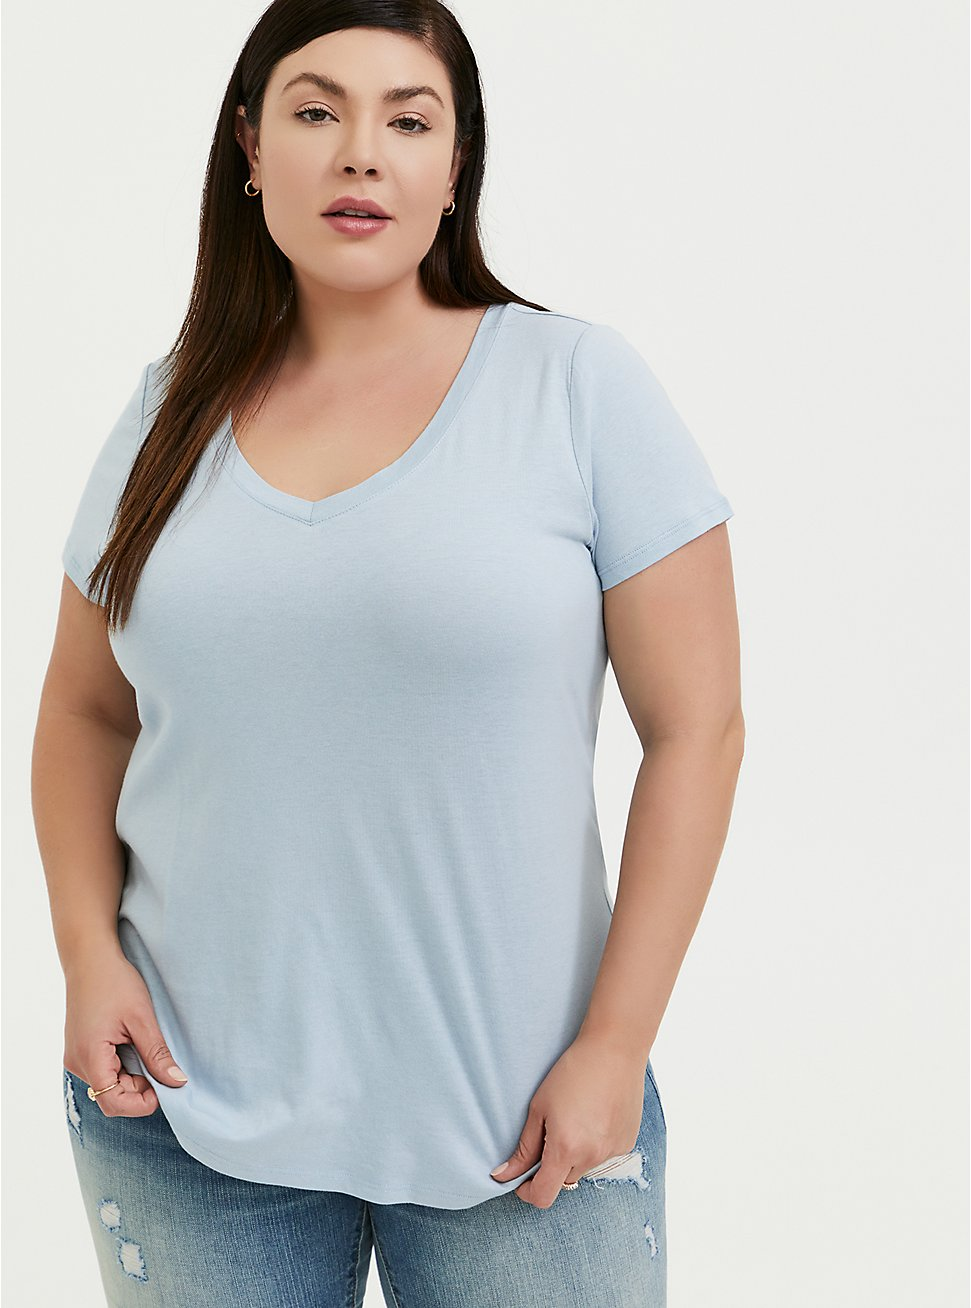 Classic Fit V-Neck Tee - Heritage Cotton Light Blue, BLUE FOG, hi-res